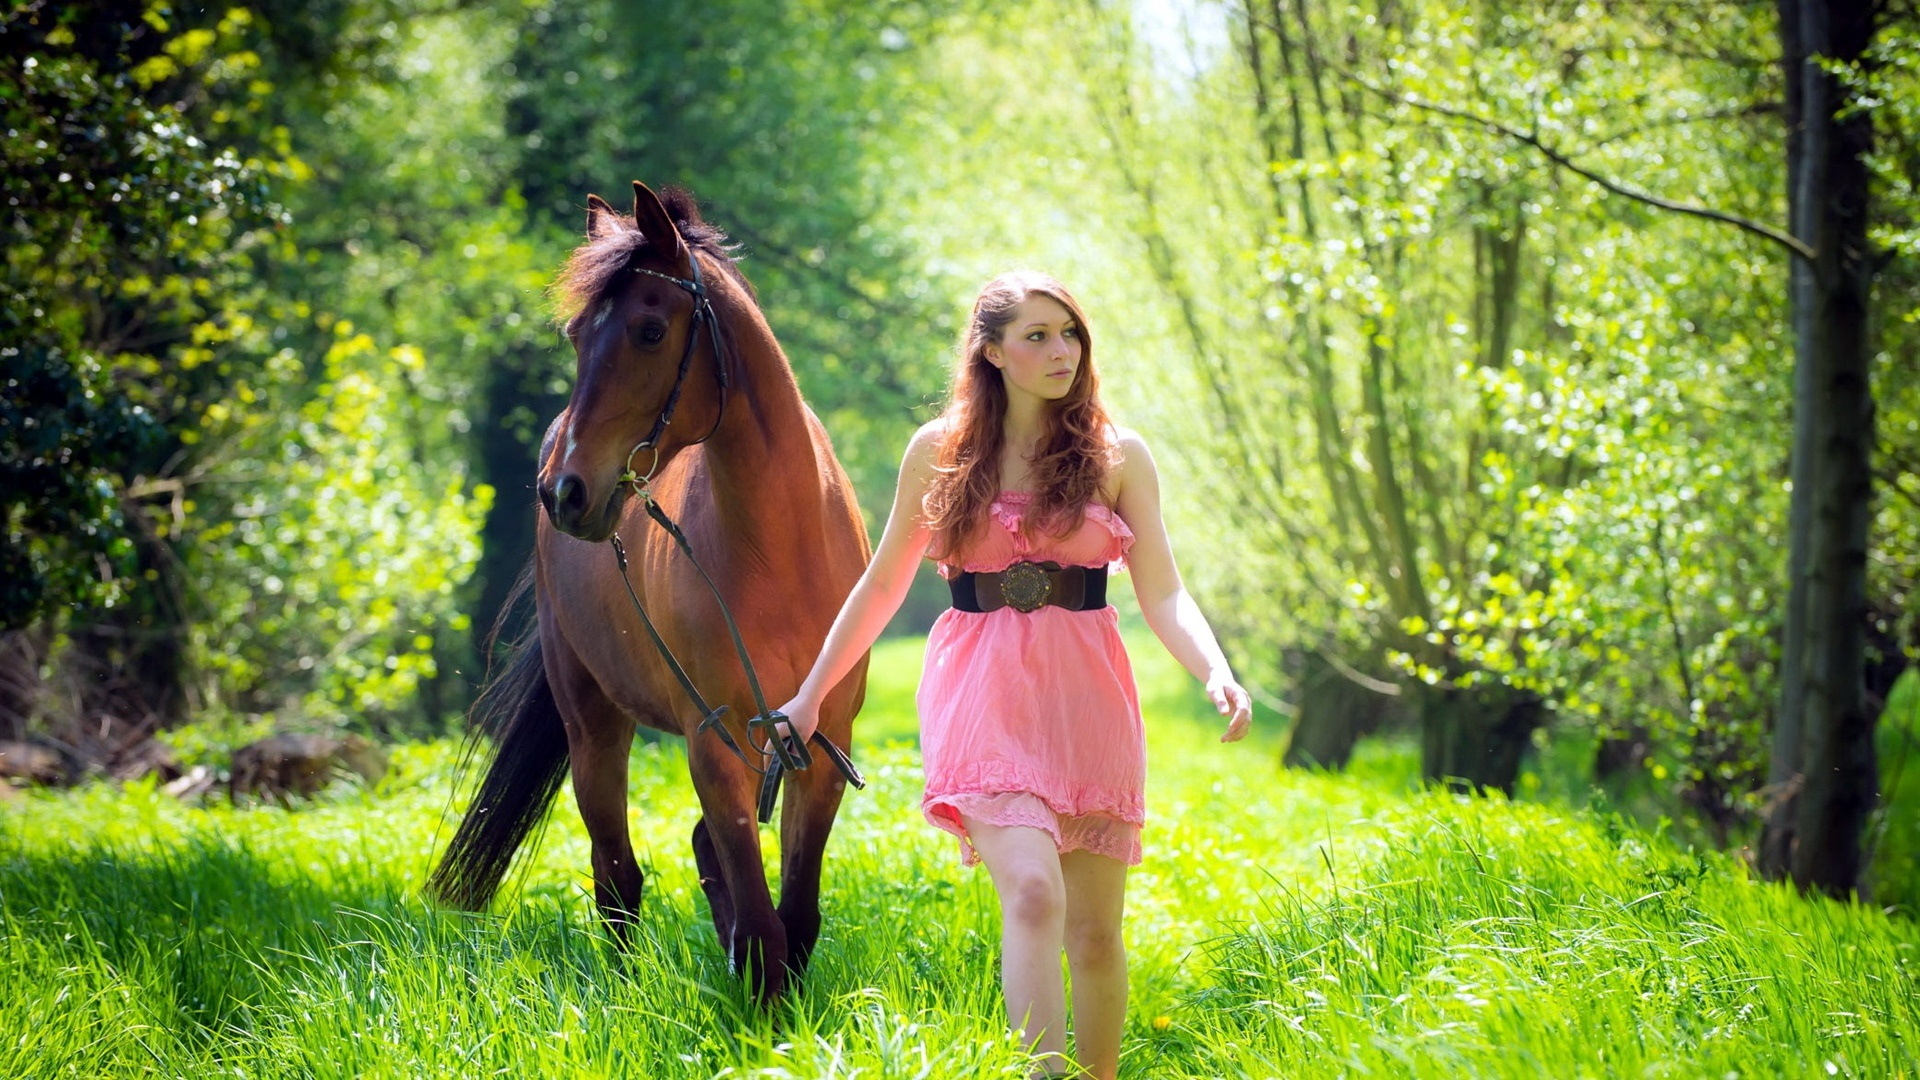 Boy And Girl Friendship Wallpapers Girl And Horse Grass Forest Wallpaper Girls